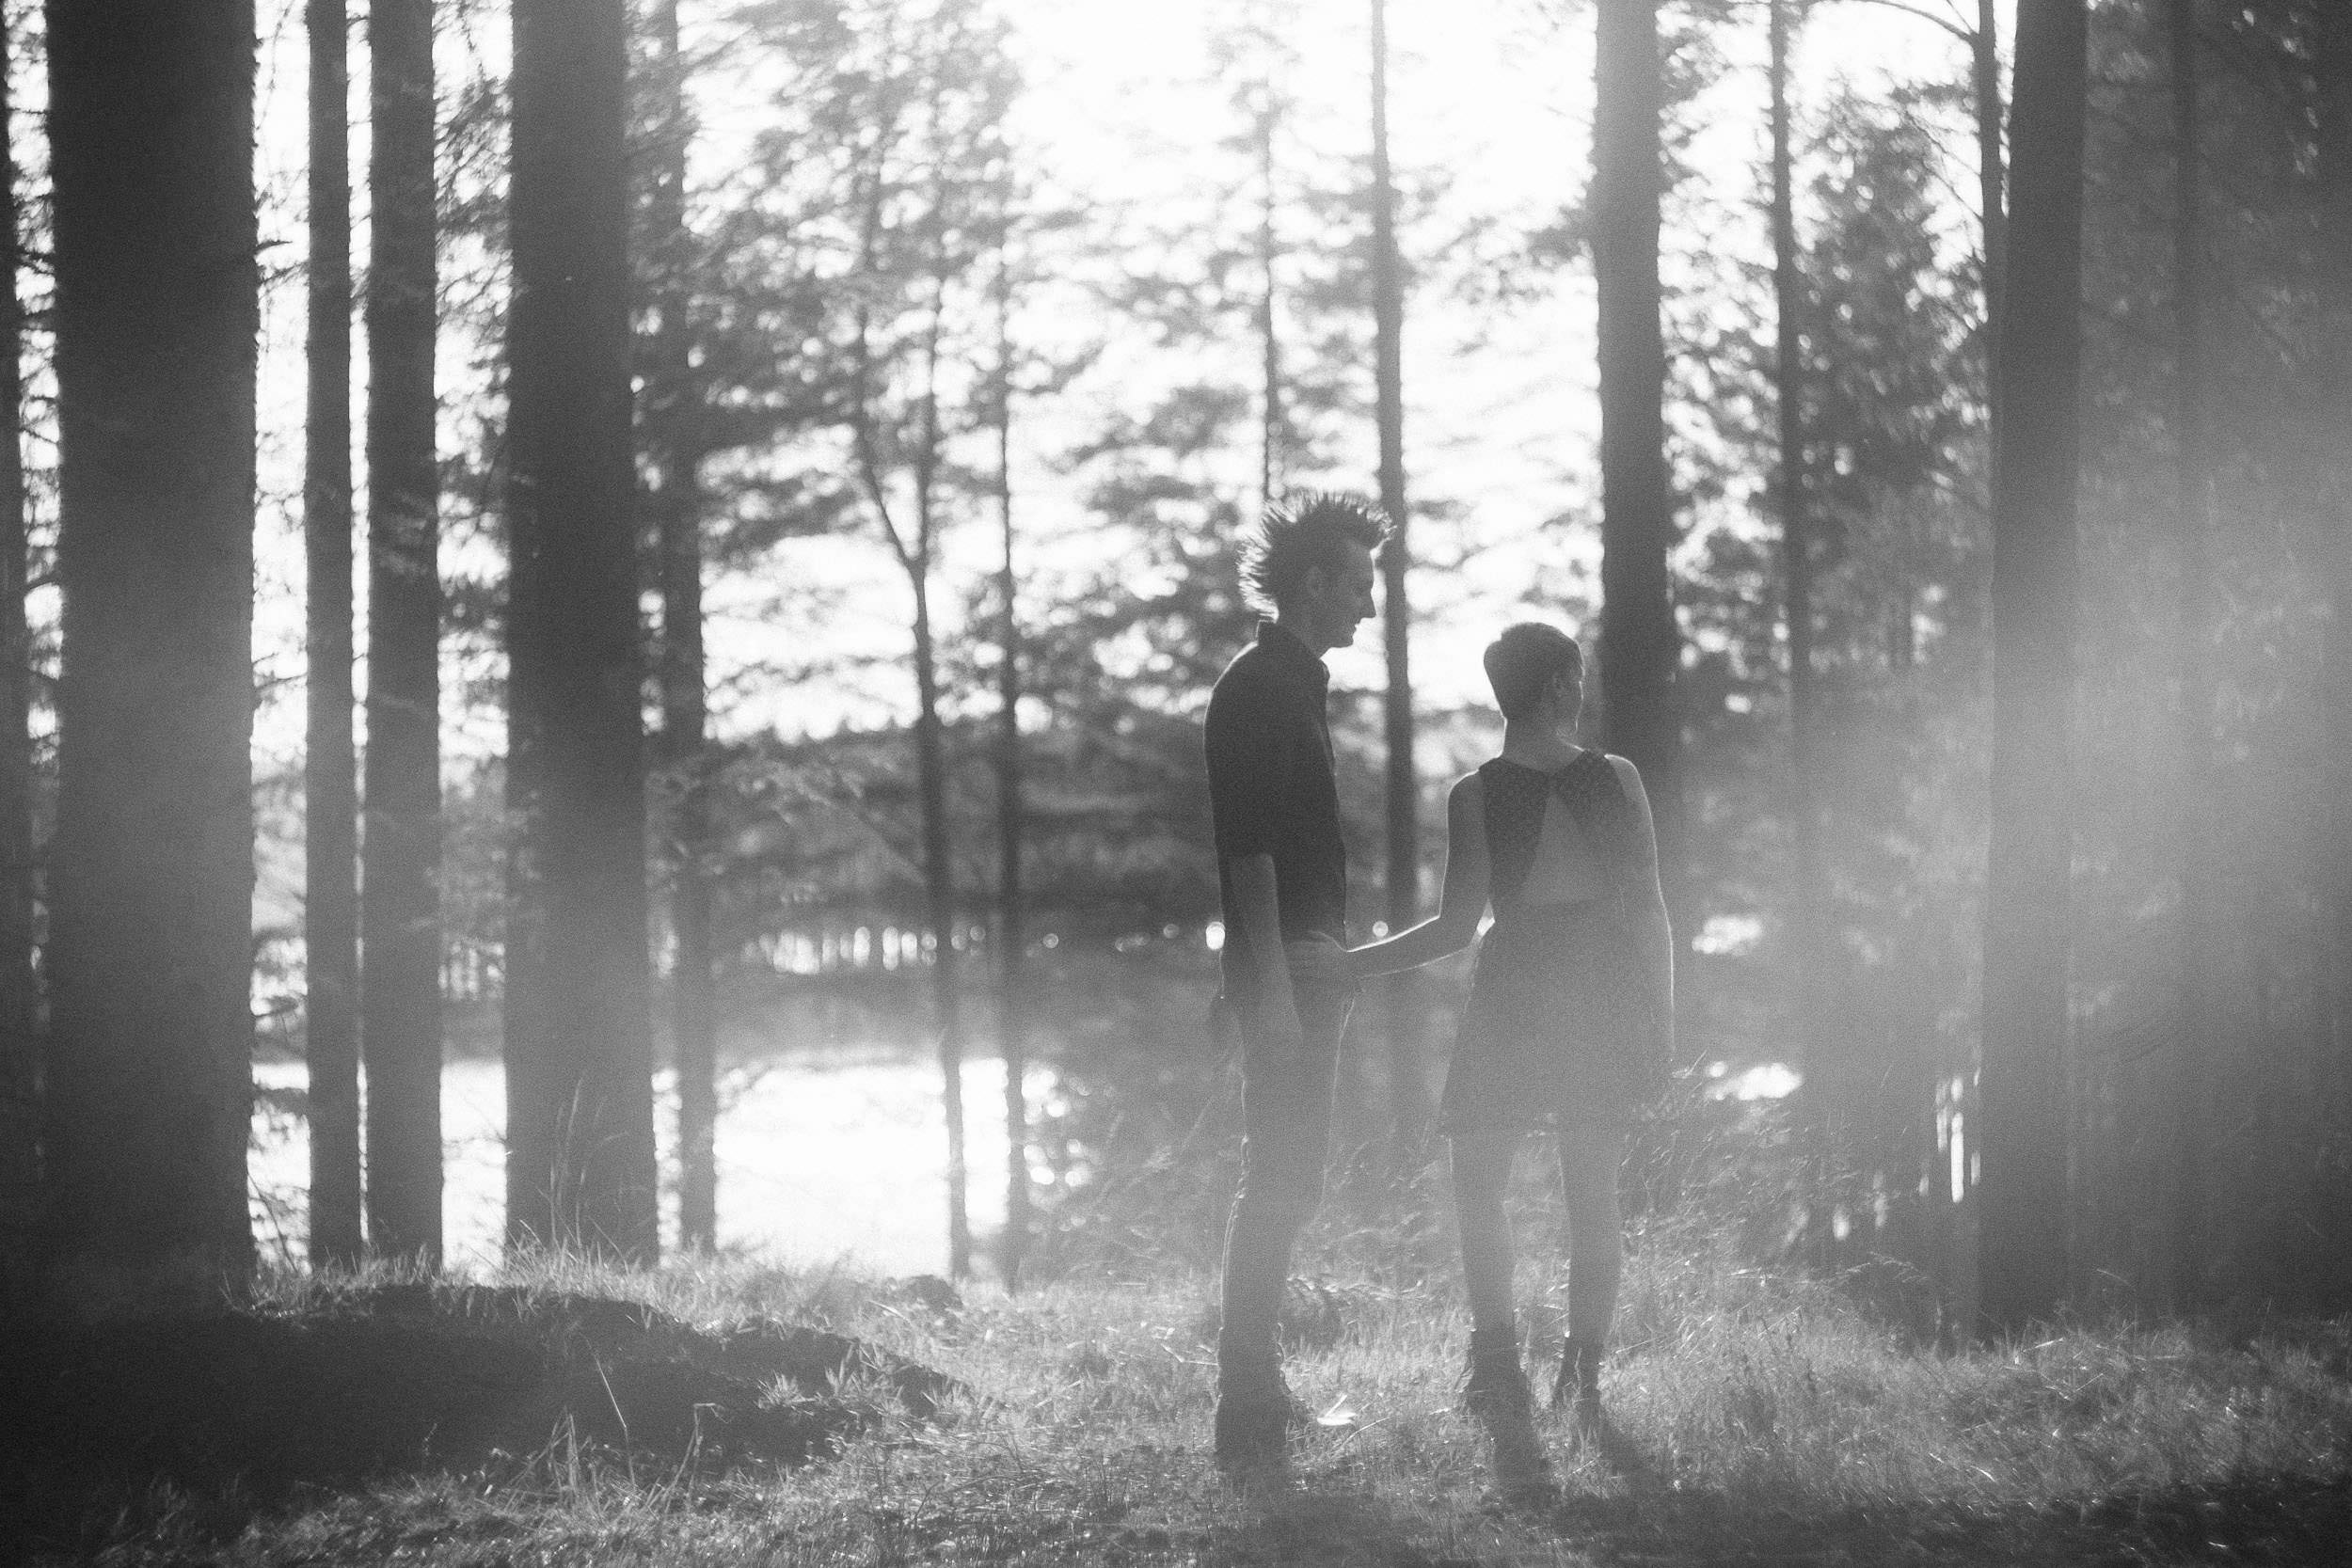 A dreamy black and white photo of sun bursting through trees and hitting engaged couple